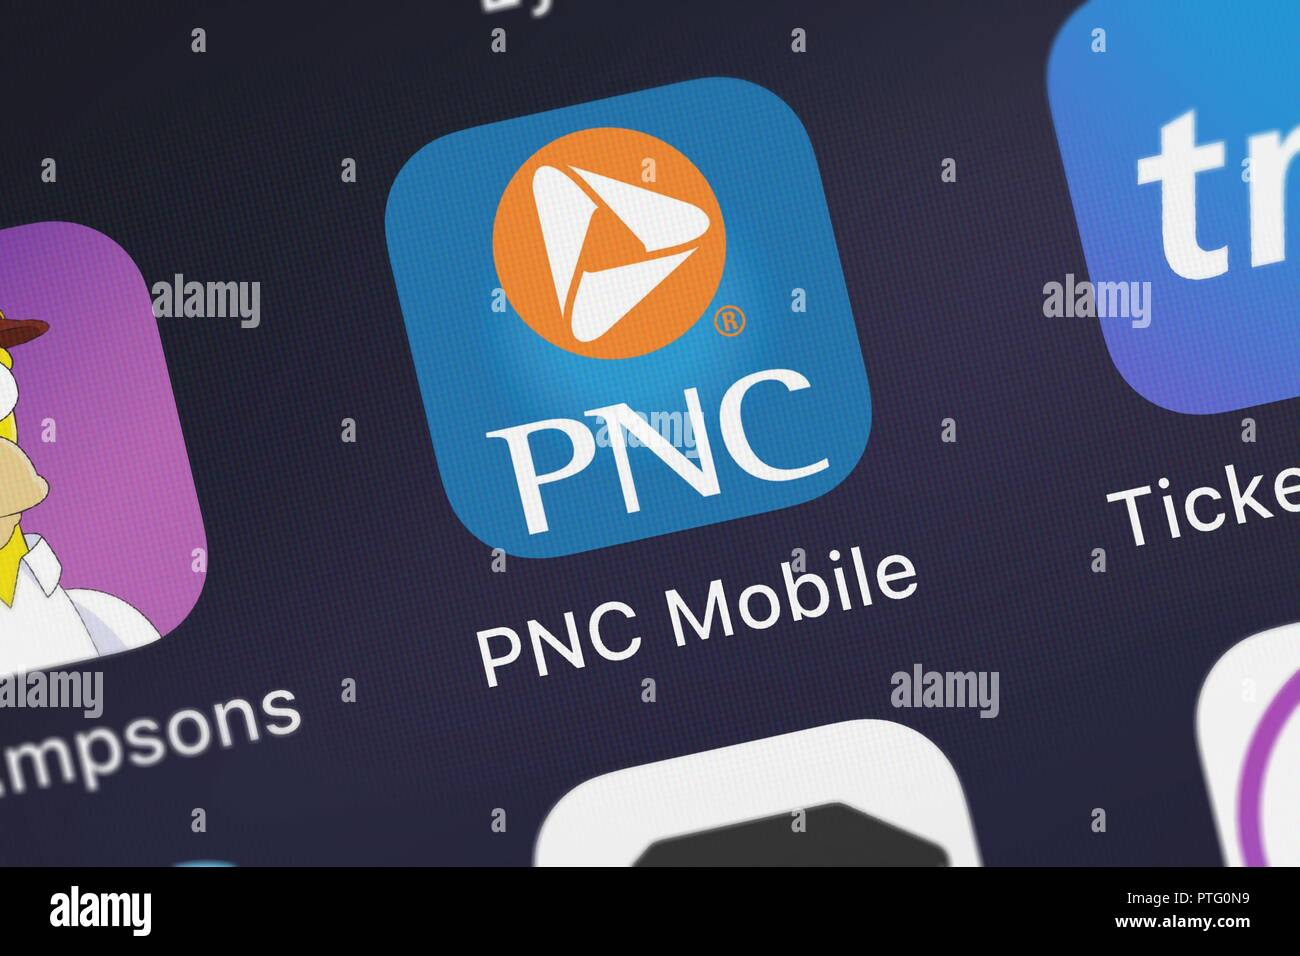 Pnc app for ipad